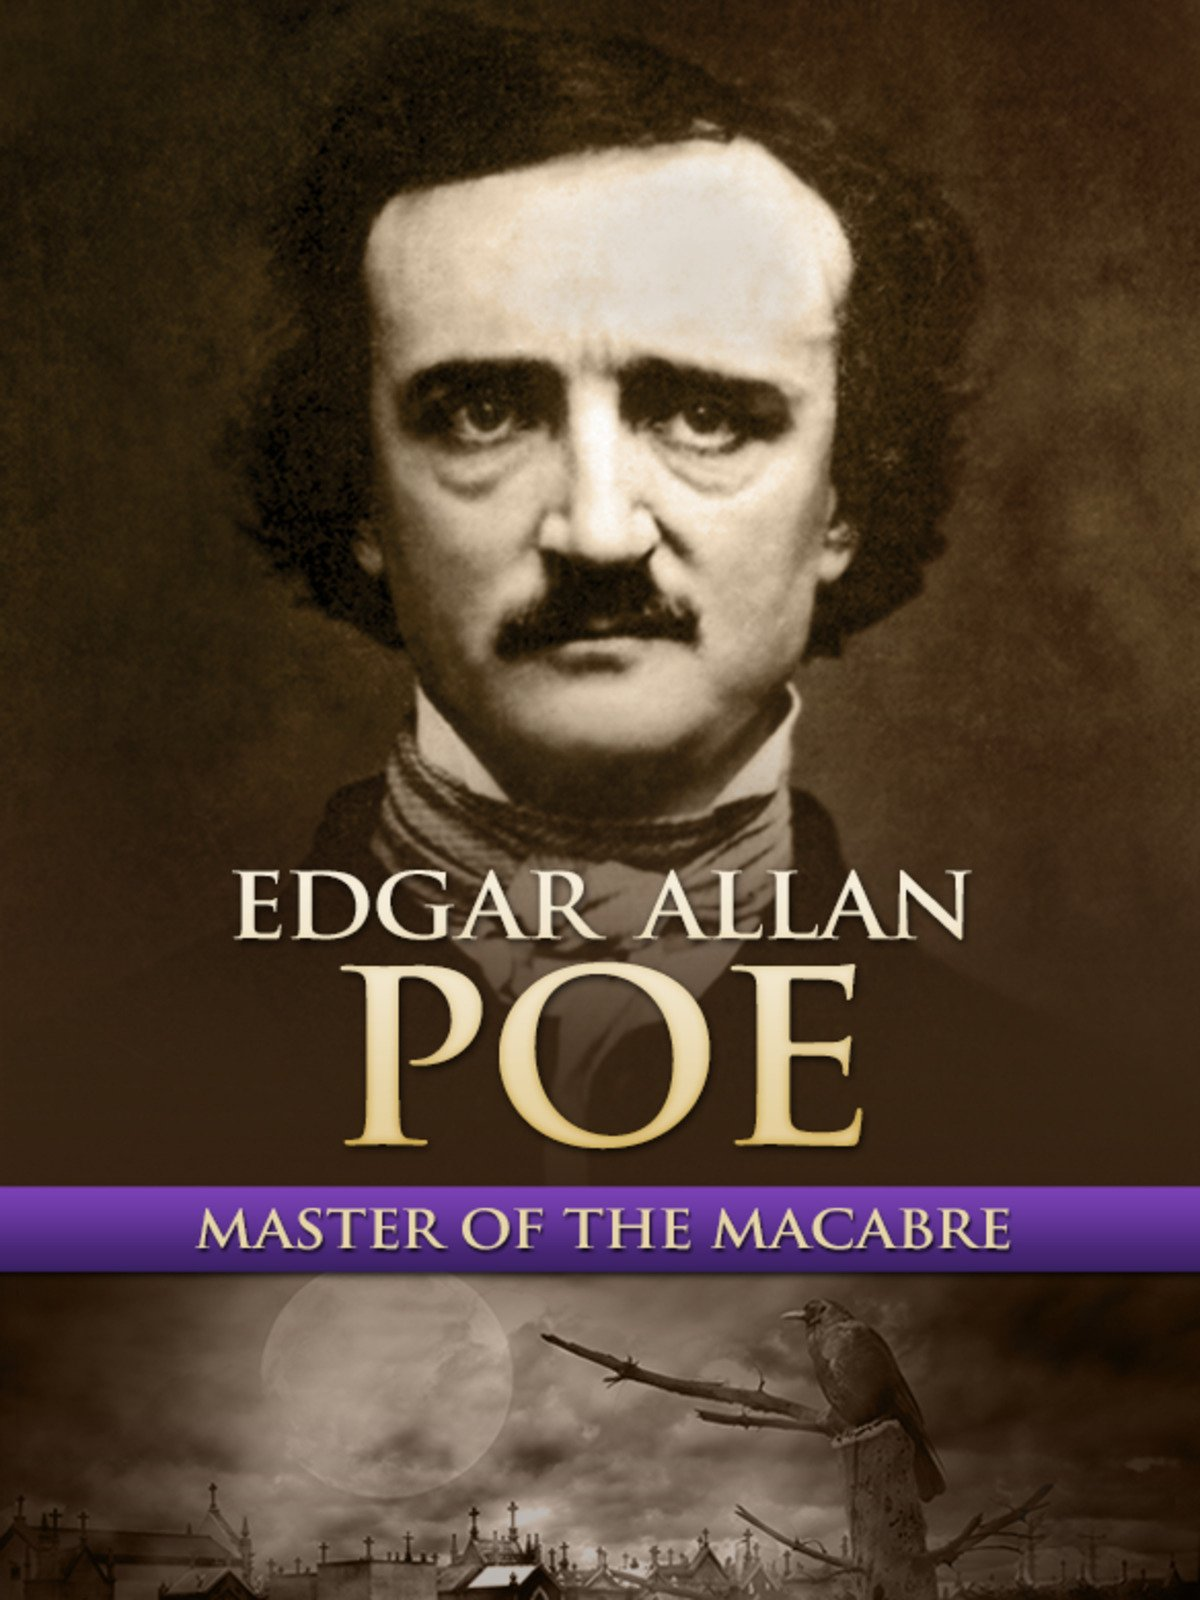 Edgar Allan Poe: Master of the Macabre on Amazon Prime Instant Video UK